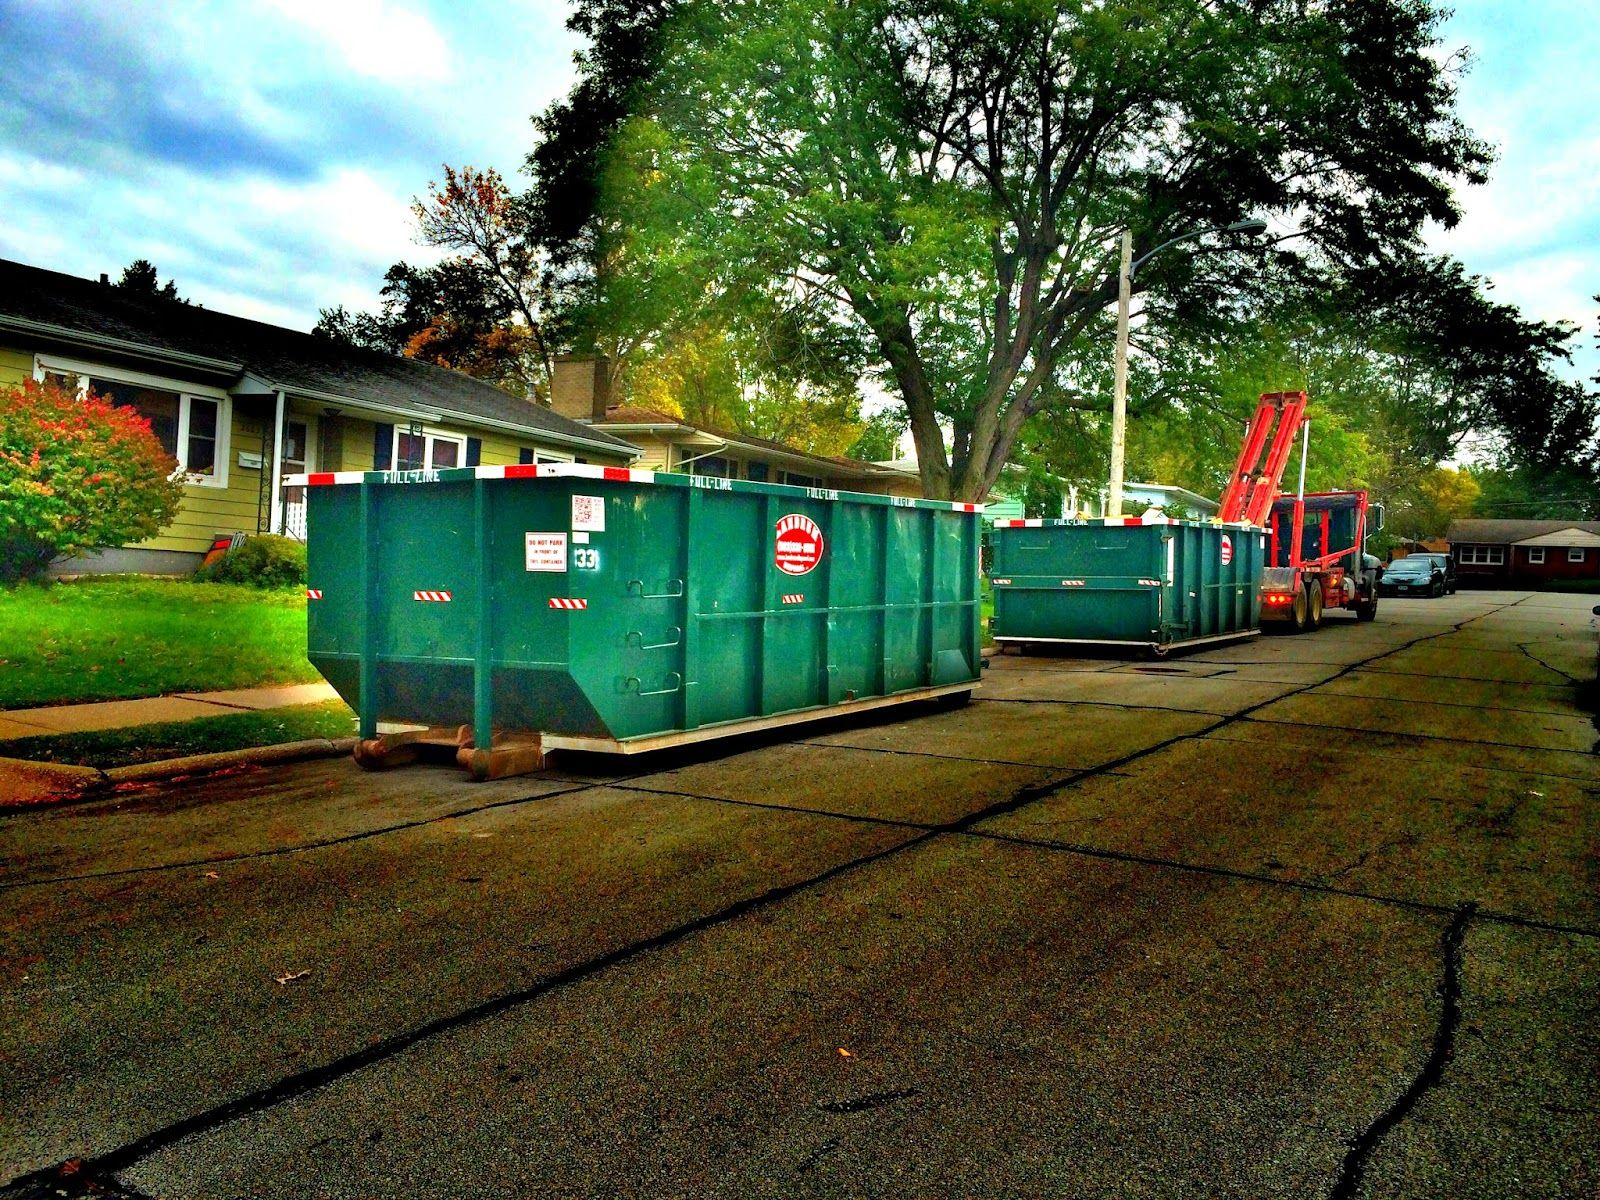 Dumpster Rental Leclaire Iowa 563 332 2555 Great Free Tips For You On Renting Dumpster Rental Grand Mound Rock Island Illinois